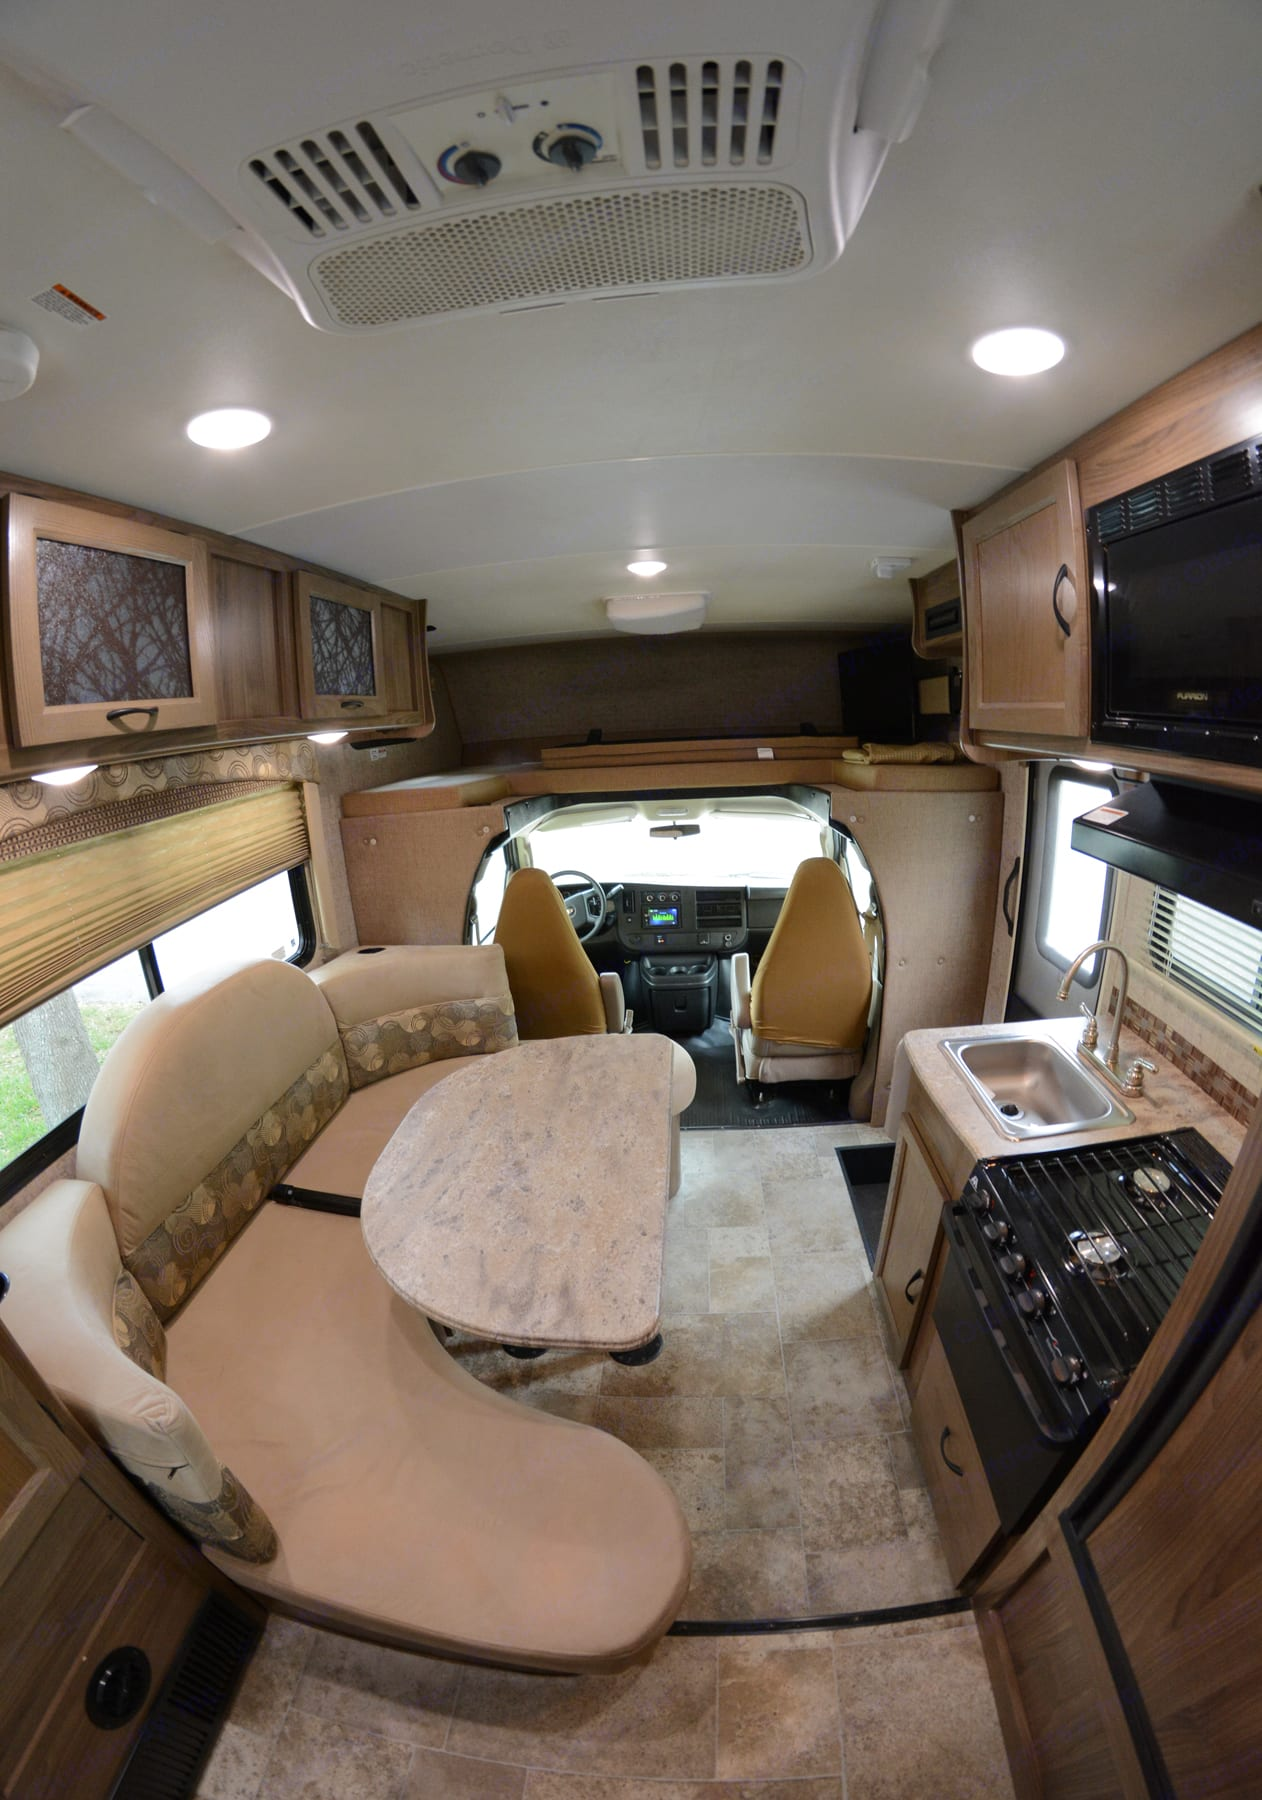 Driver and passenger seat above bunk or cab house for sleeping two more people. One flat screen to the right fully loaded. Dinette area with removable table.. Coachmen Freelander 2017